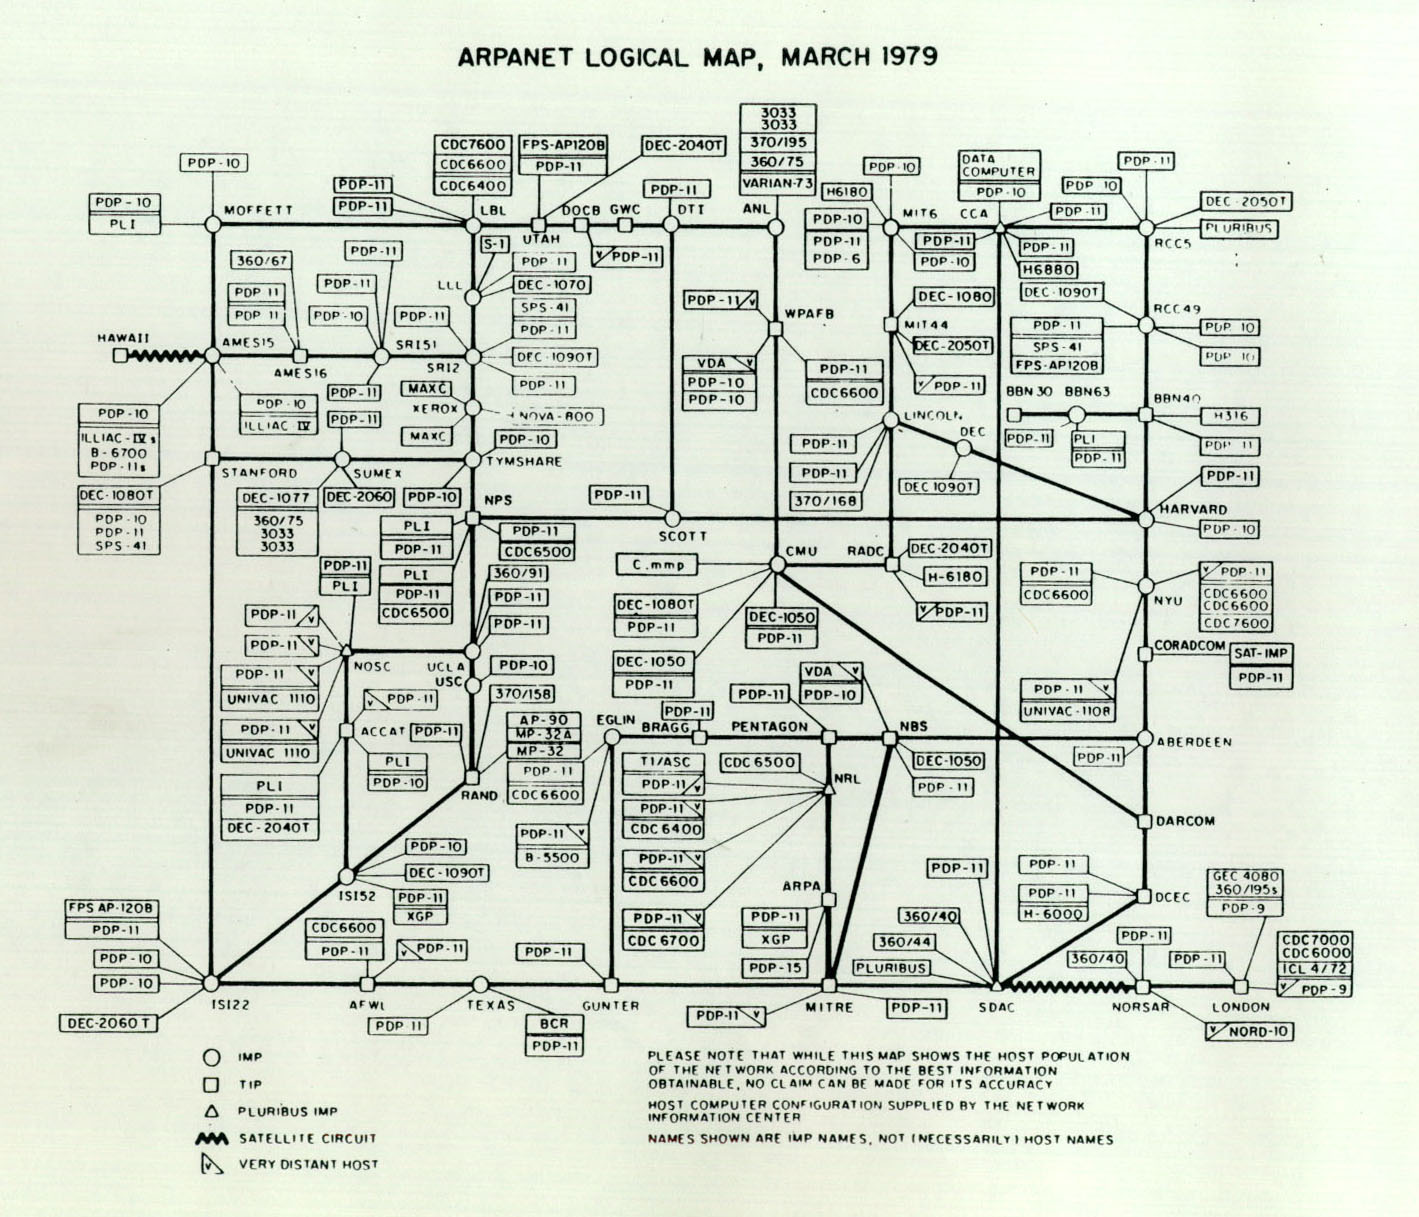 Cool Computer Technology Electronics Electronic Circuits 8085 Projects Blog Archive Analog To Digital Arpanet Logical Map March 1979